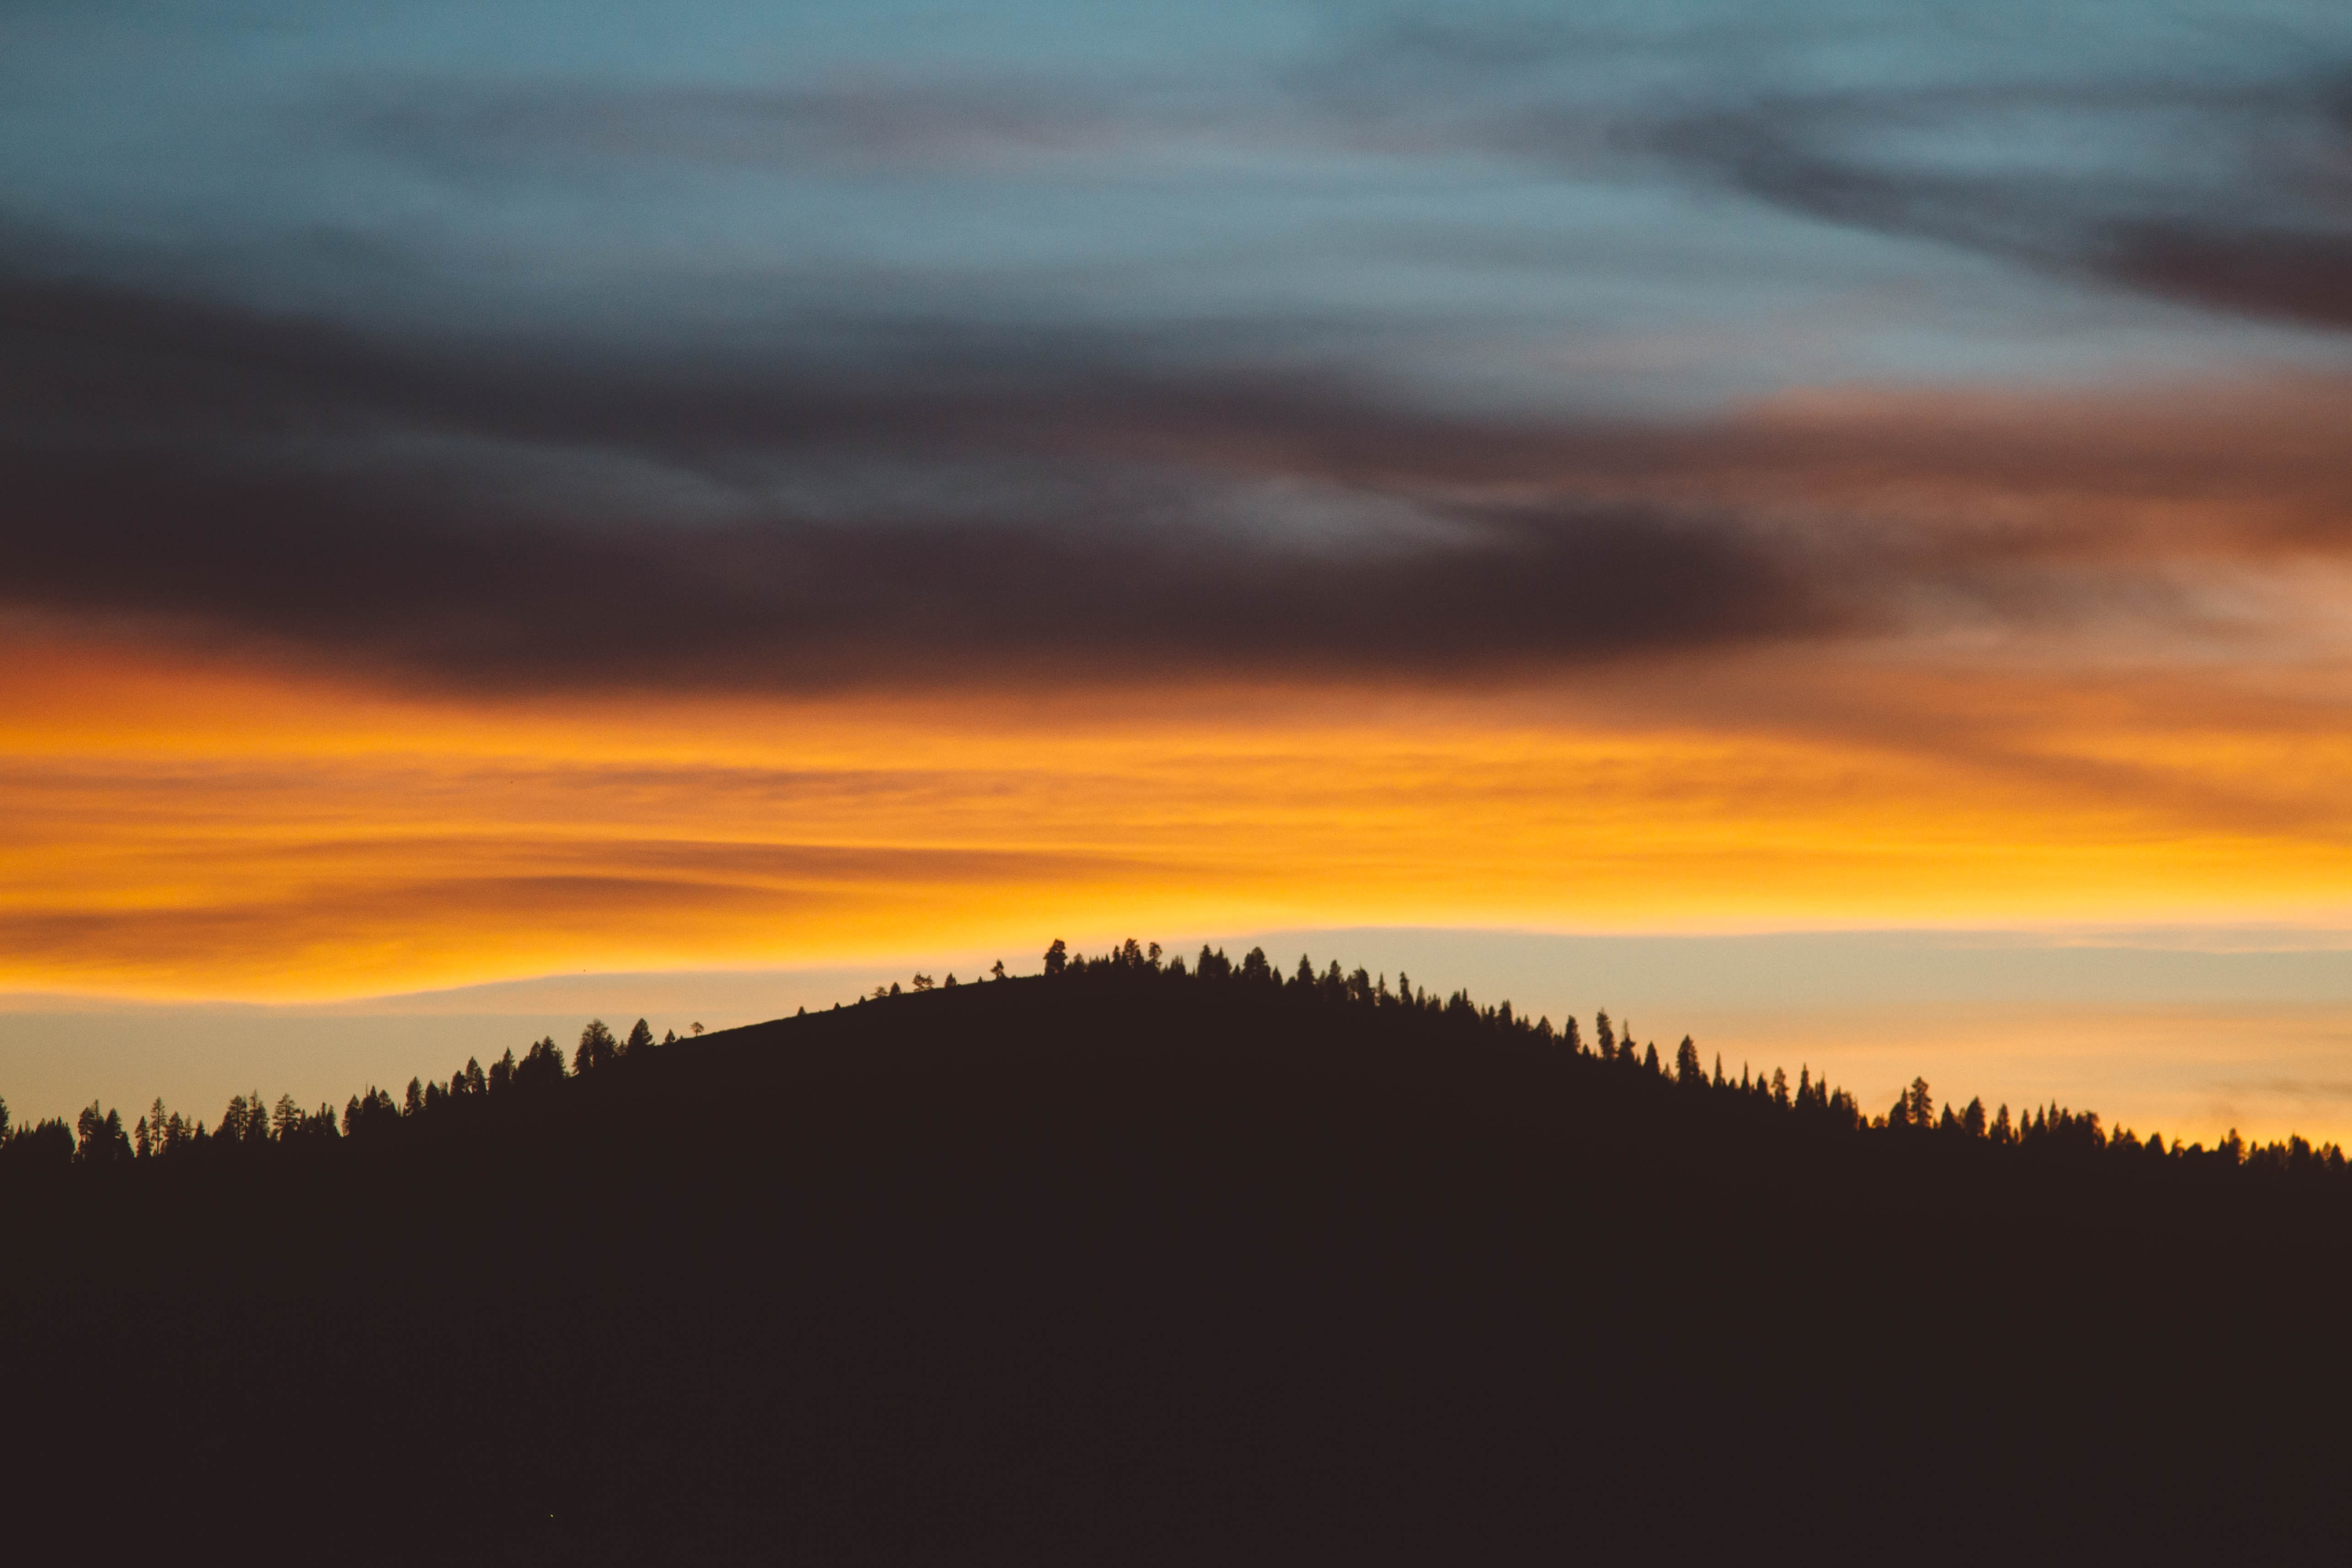 A silhouette of a wooded hill against orange sky during sunset